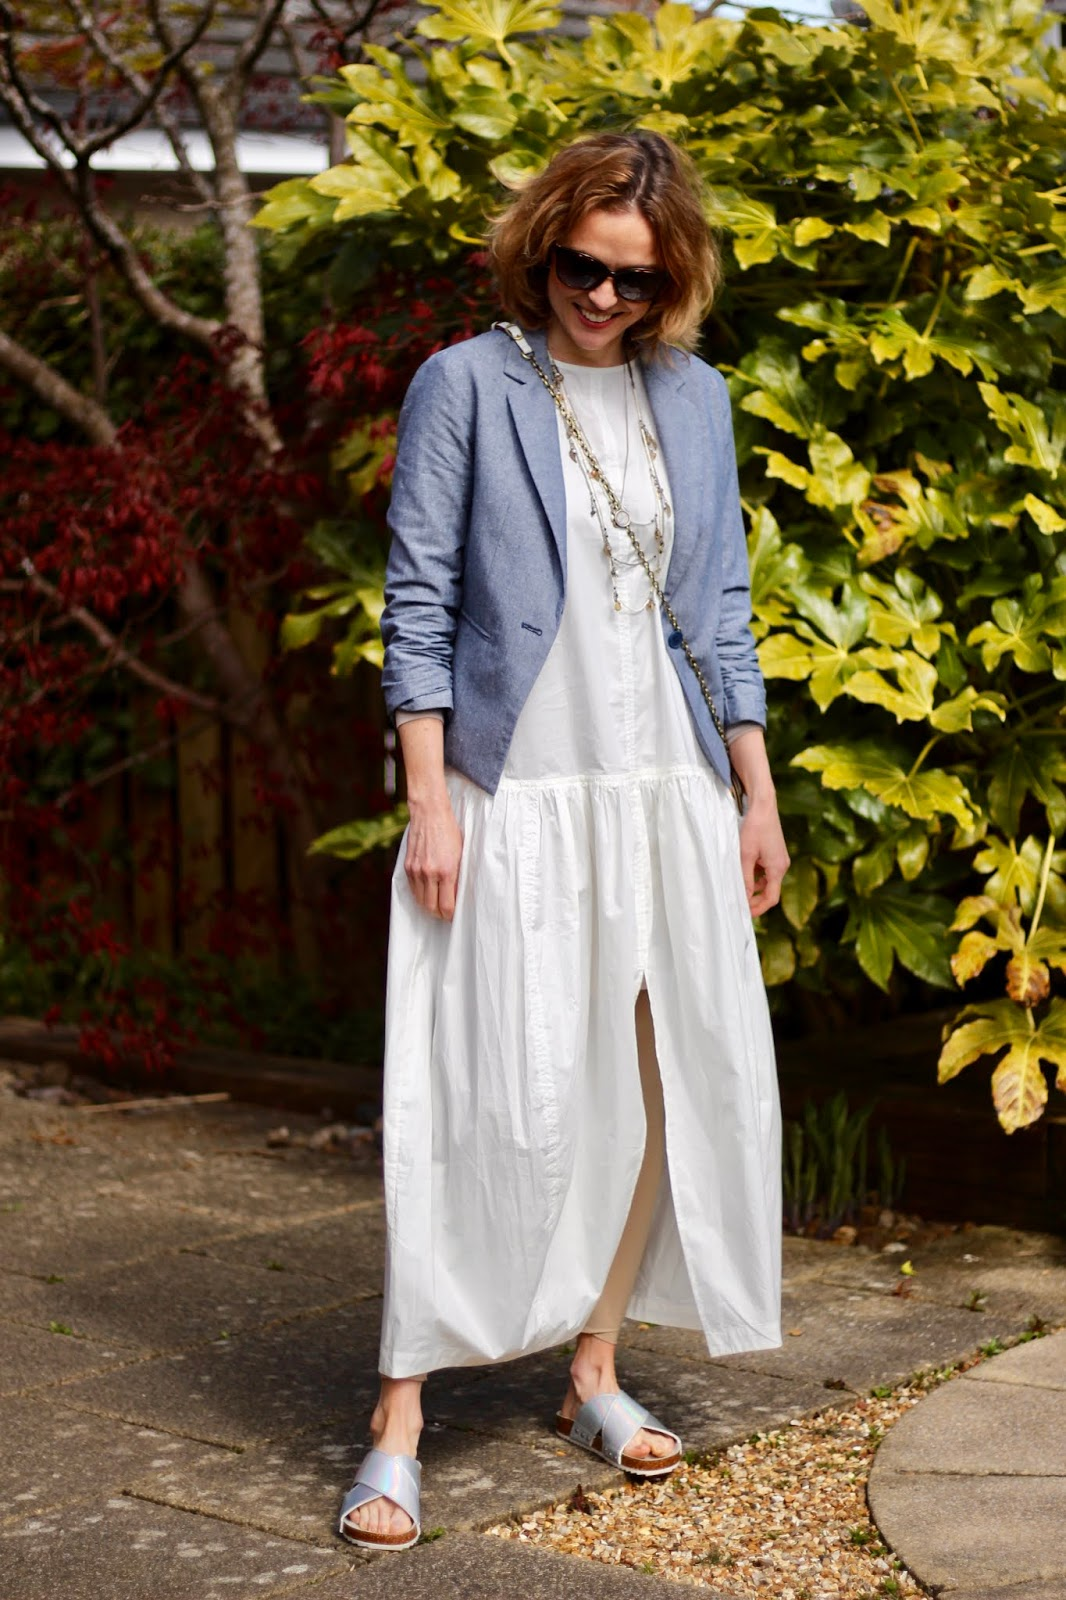 Lockdown Style | White Maxi Dress, Leggings & a Blazer | Fake Fabulous